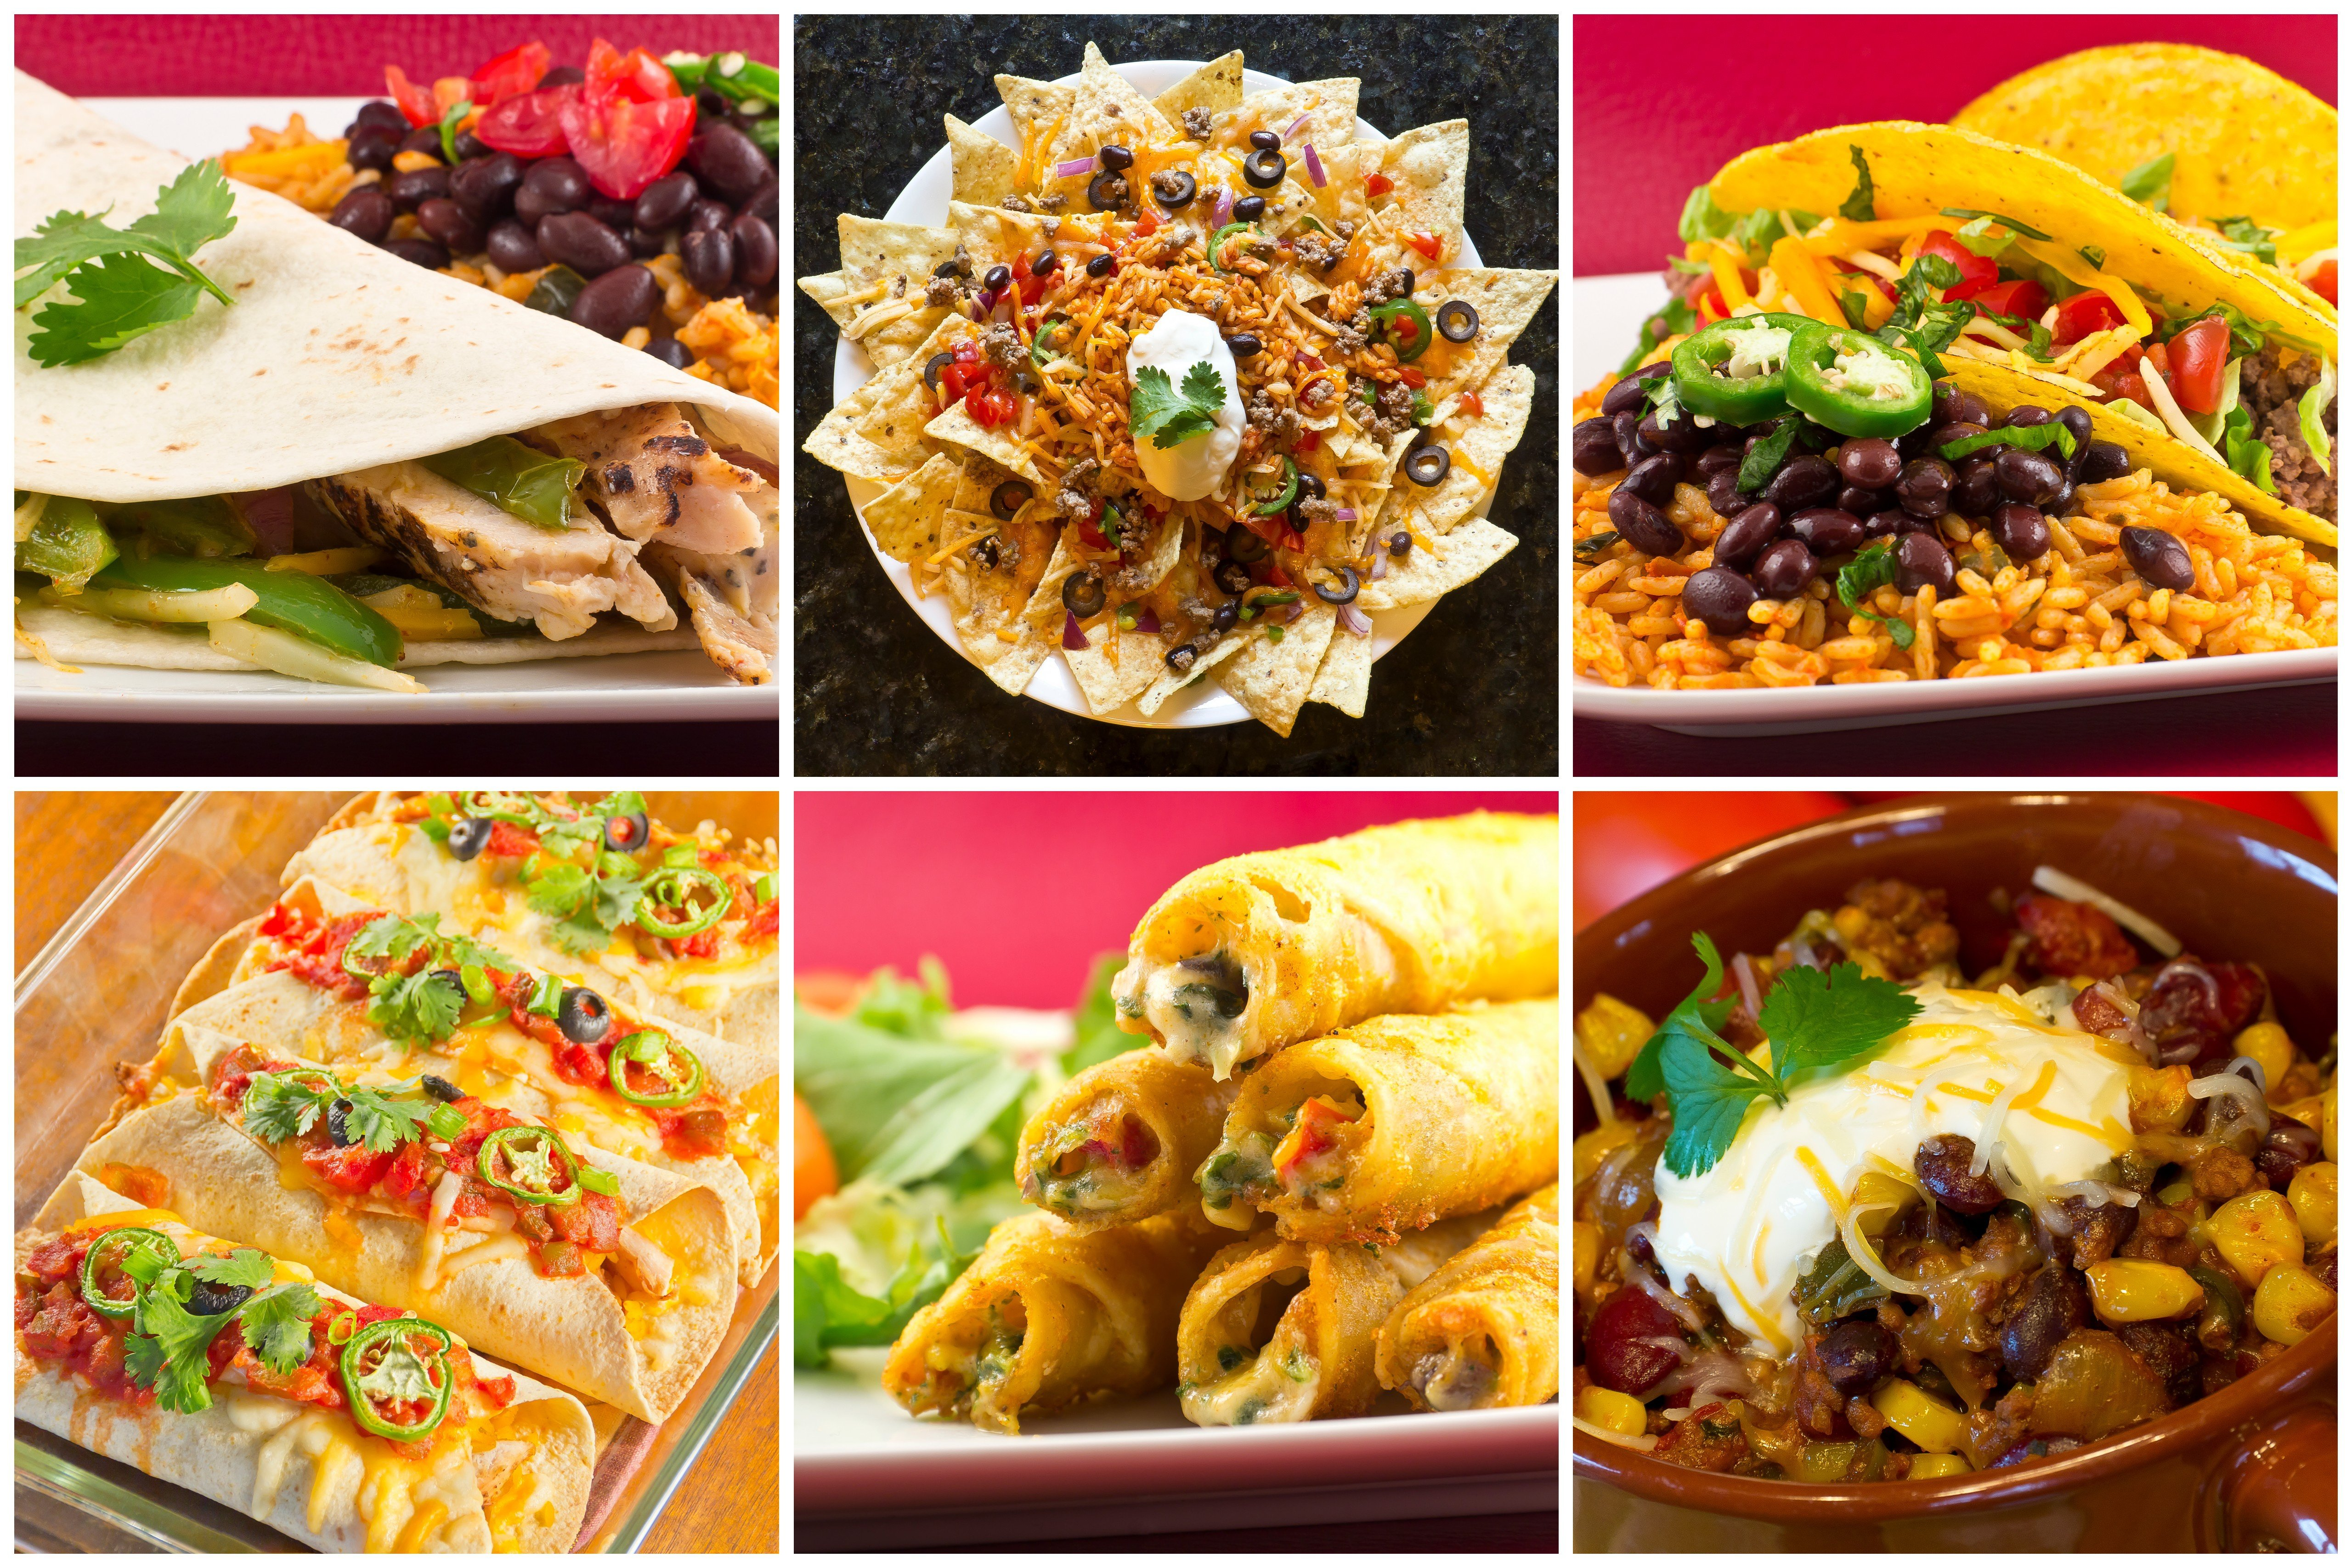 Marketing your message is like ordering food at a Mexican restaurant. Once you have identified and clarified your core message, you are going to brand your online presence through your core message.  Depending on who you are targeting, you package your message accordingly. I recommend you say it a variety of ways to reach different people.  Overall you want all of your content on social media to be an expression of your brand, your core message, even when you like, comment and share other people's content, you want it to be in alignment with your brand.